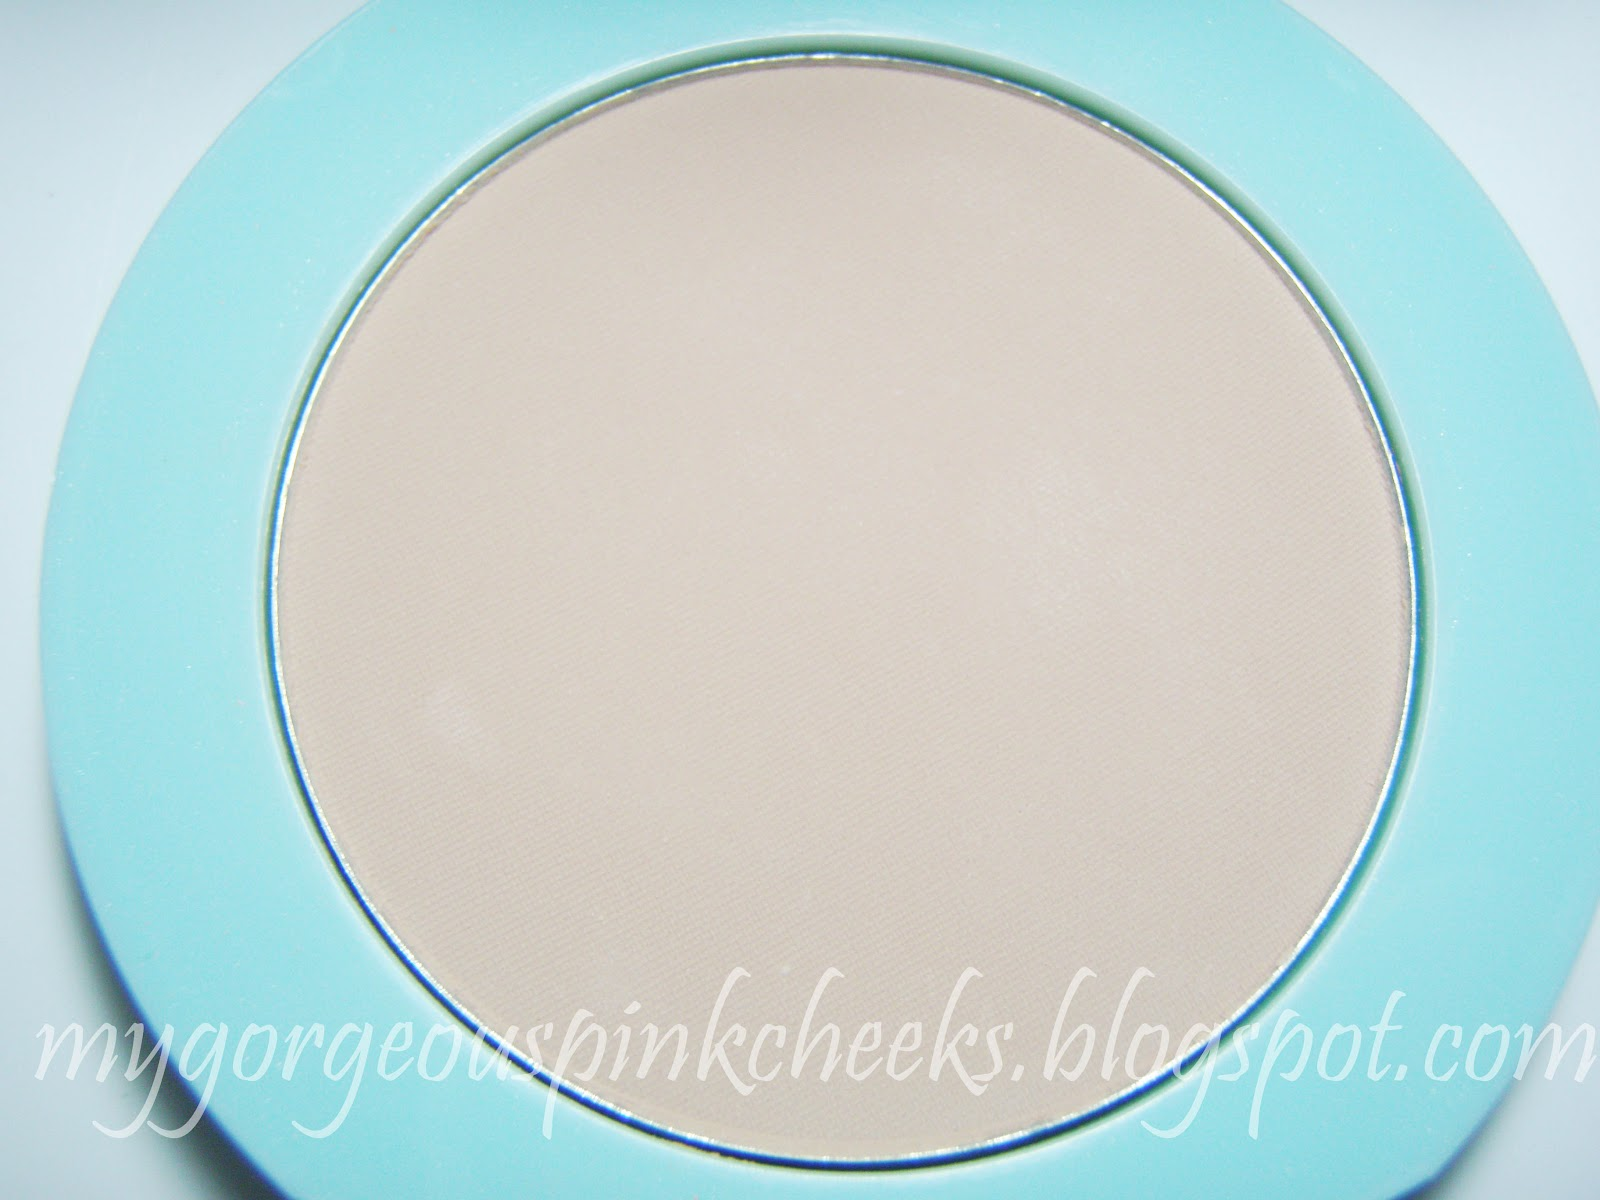 Maybelline Clear Smooth Shine Free Pressed Powder - My Gorgeous ...